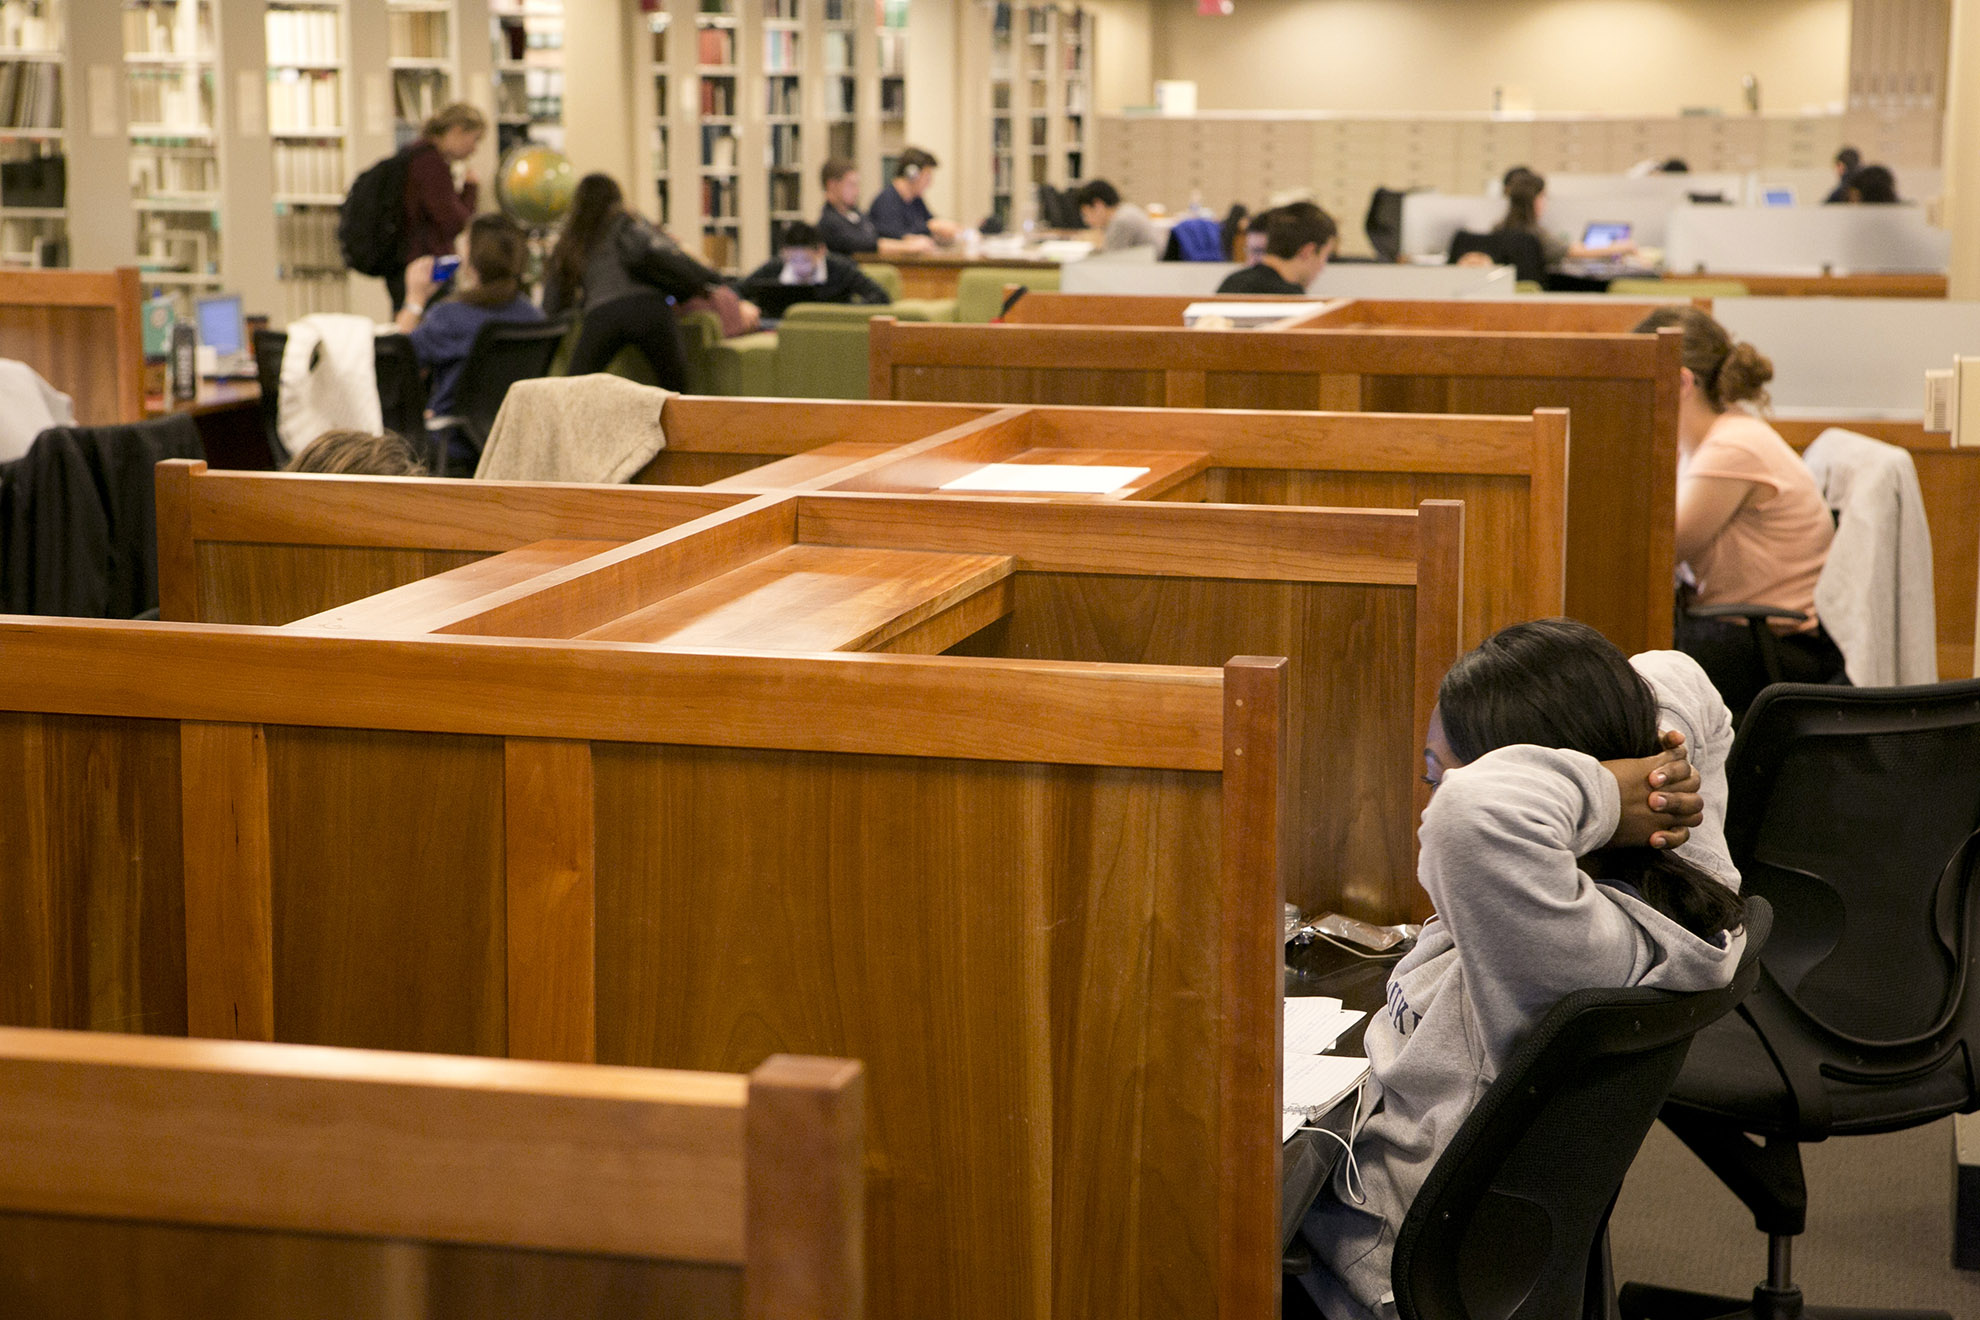 Students studying in Perkins and Bostock Libraries.